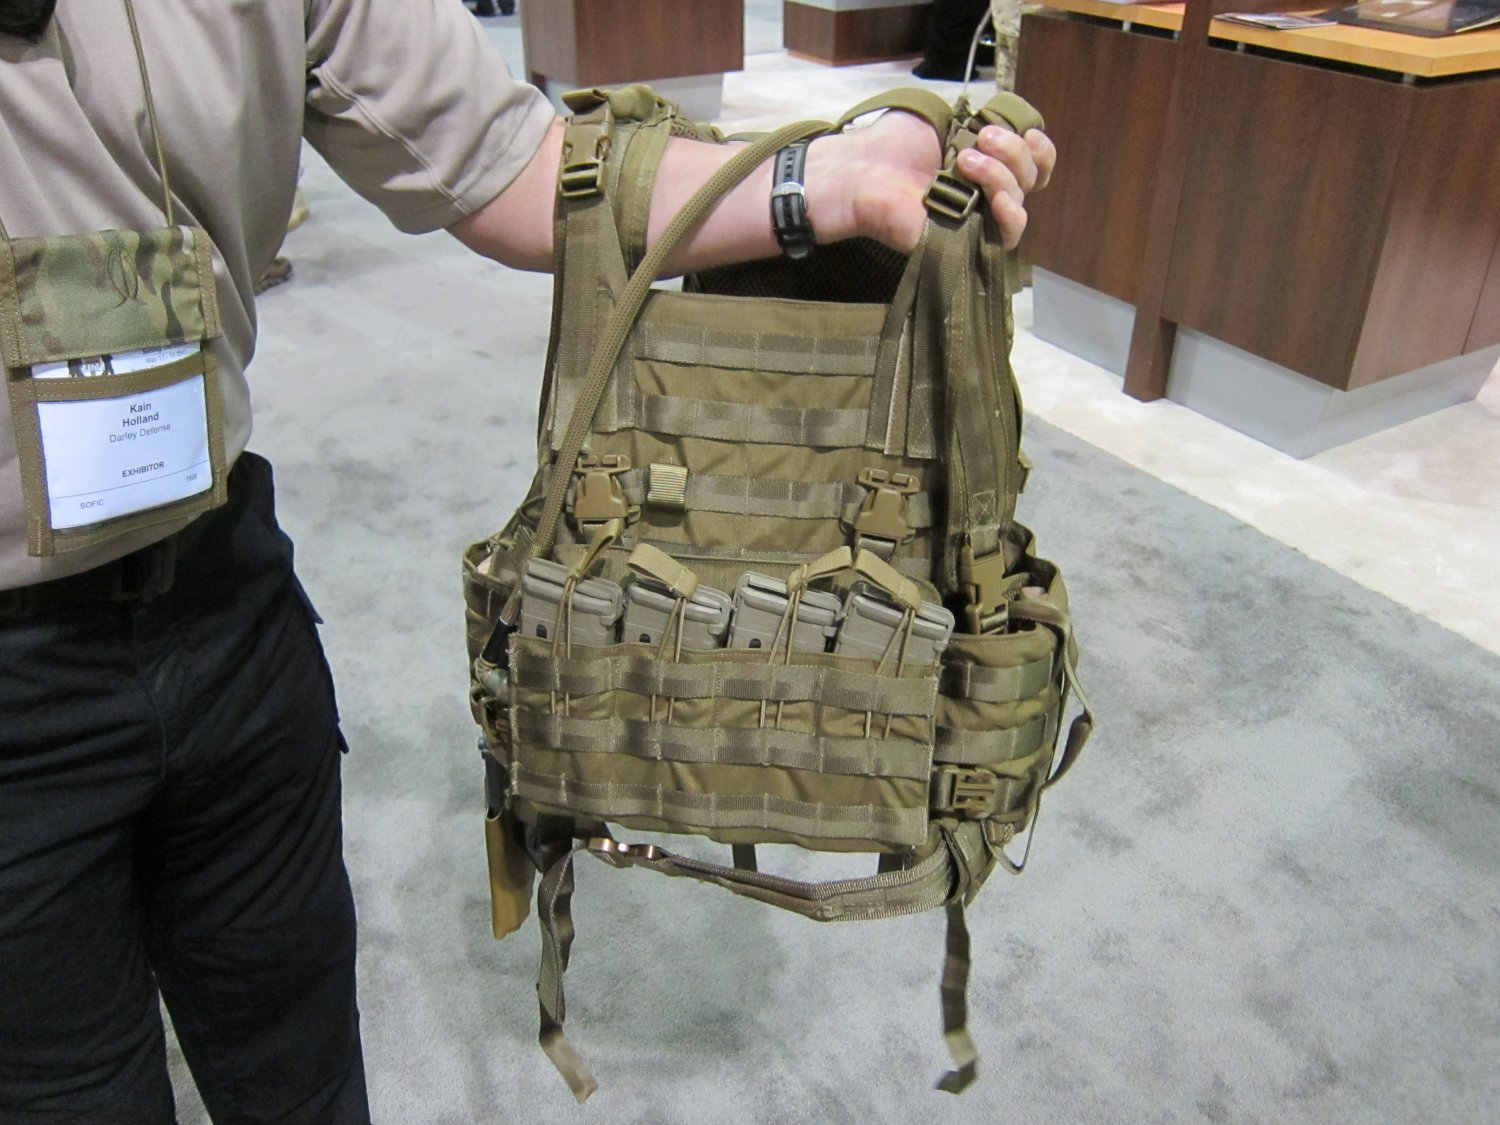 <!--:en-->Archangel Armor Internal Frame Load-Bearing System (IFLBS) Version 5 Tactical Armor Plate Carrier/Tactical Vest System: Lighten your load when you're in combat mode!<!--:-->